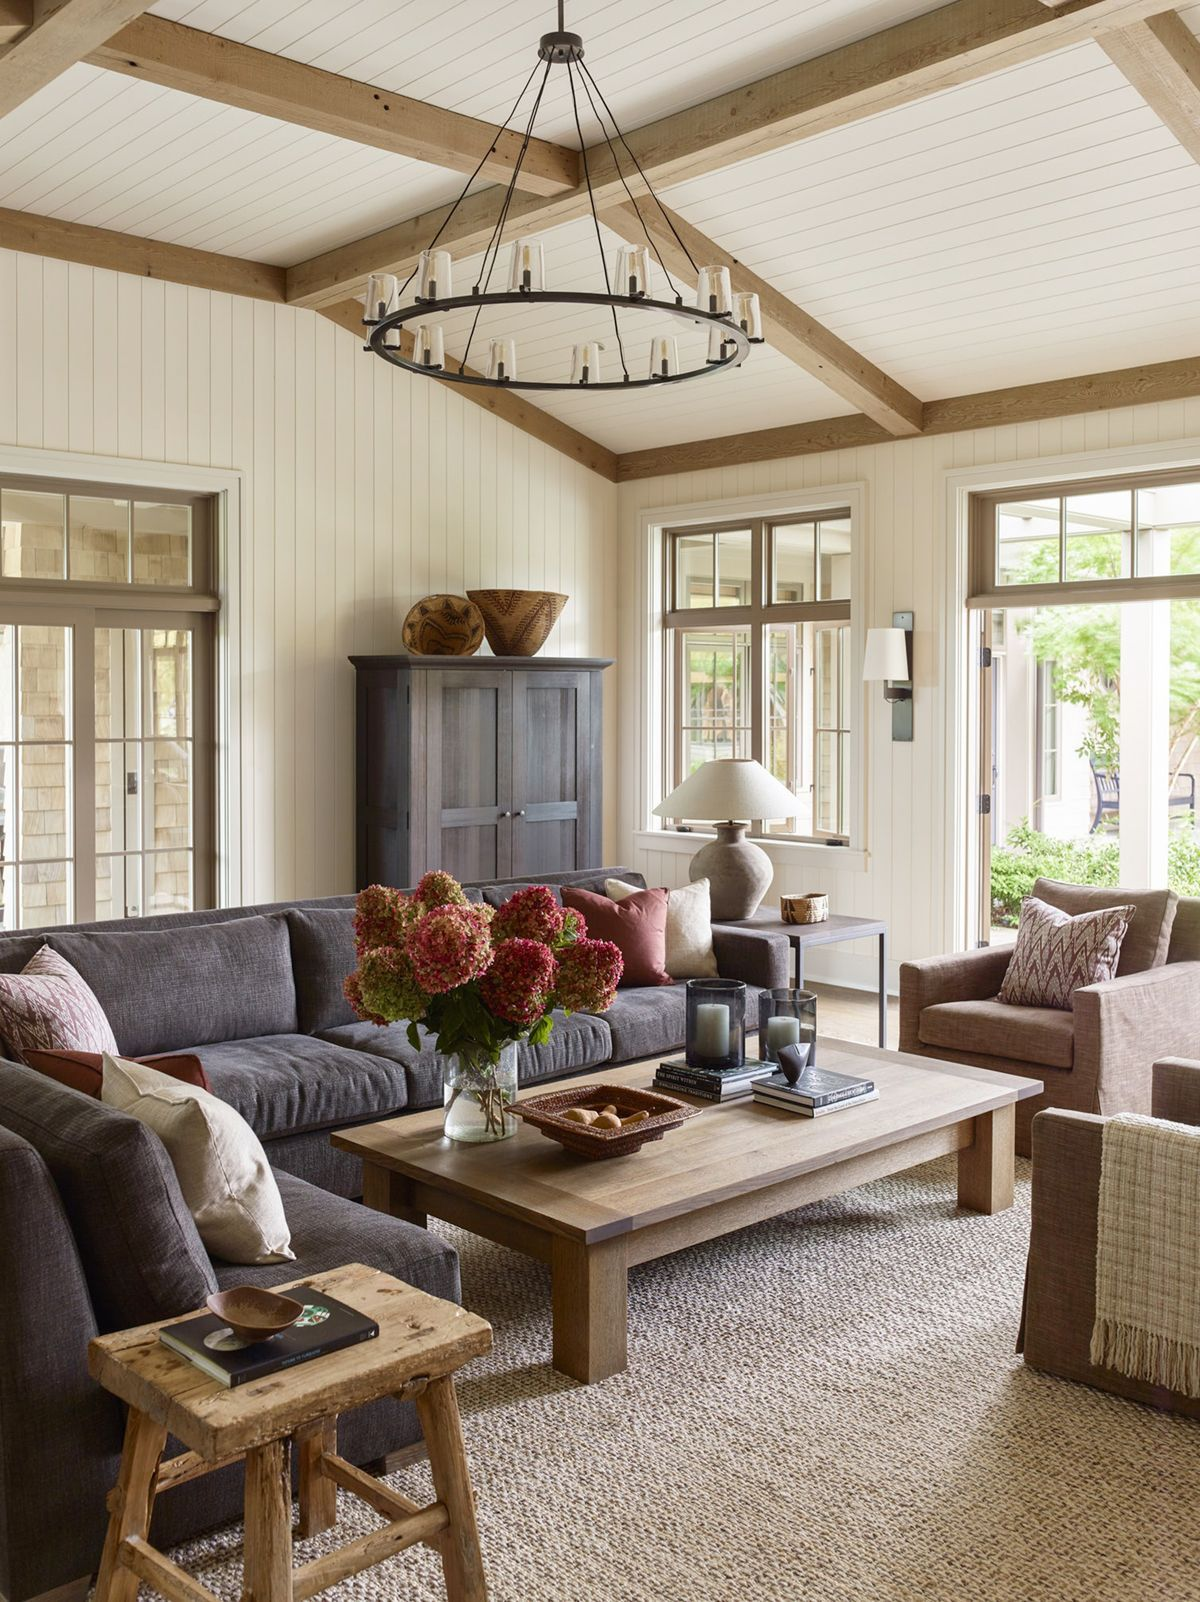 Big Sofa San Juan House Tour Traditional Meets Pacific Northwest In This San Juan